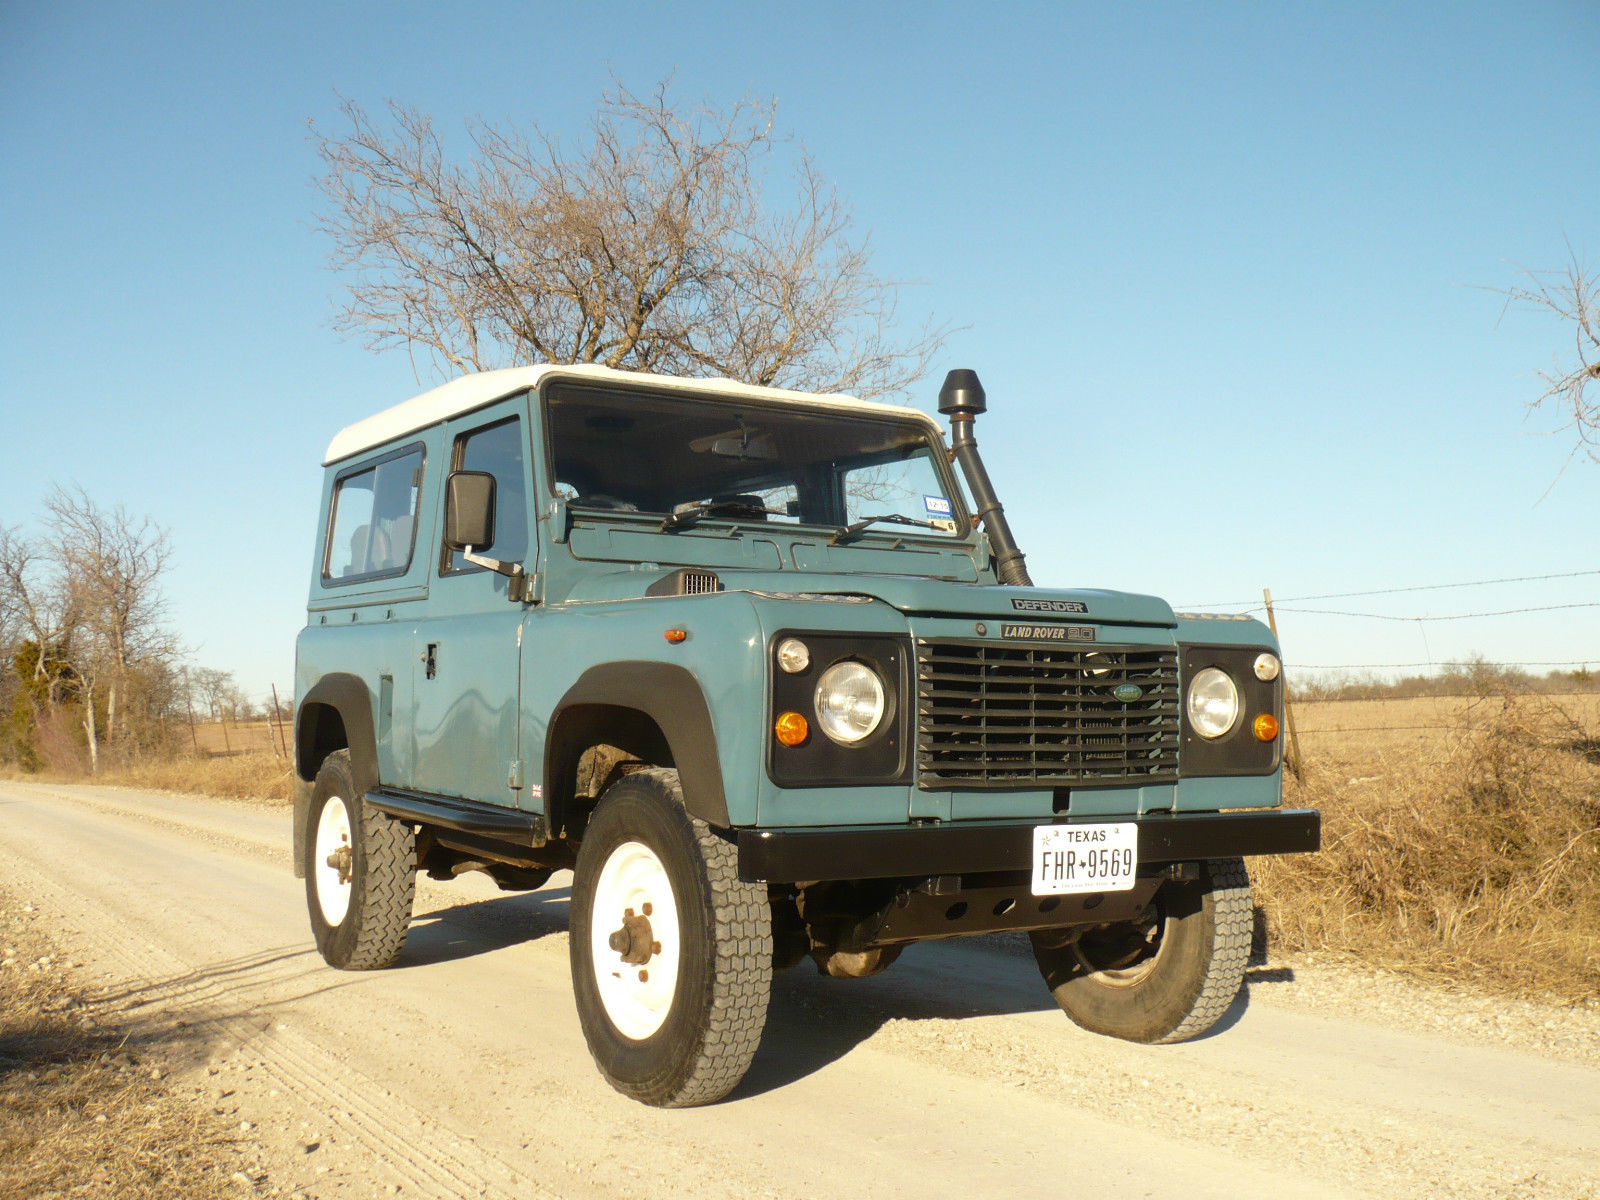 Land Rover Defender For Sale Texas >> 1986 Land Rover Defender 90 200TDI for sale in Van Alstyne, Texas, United States